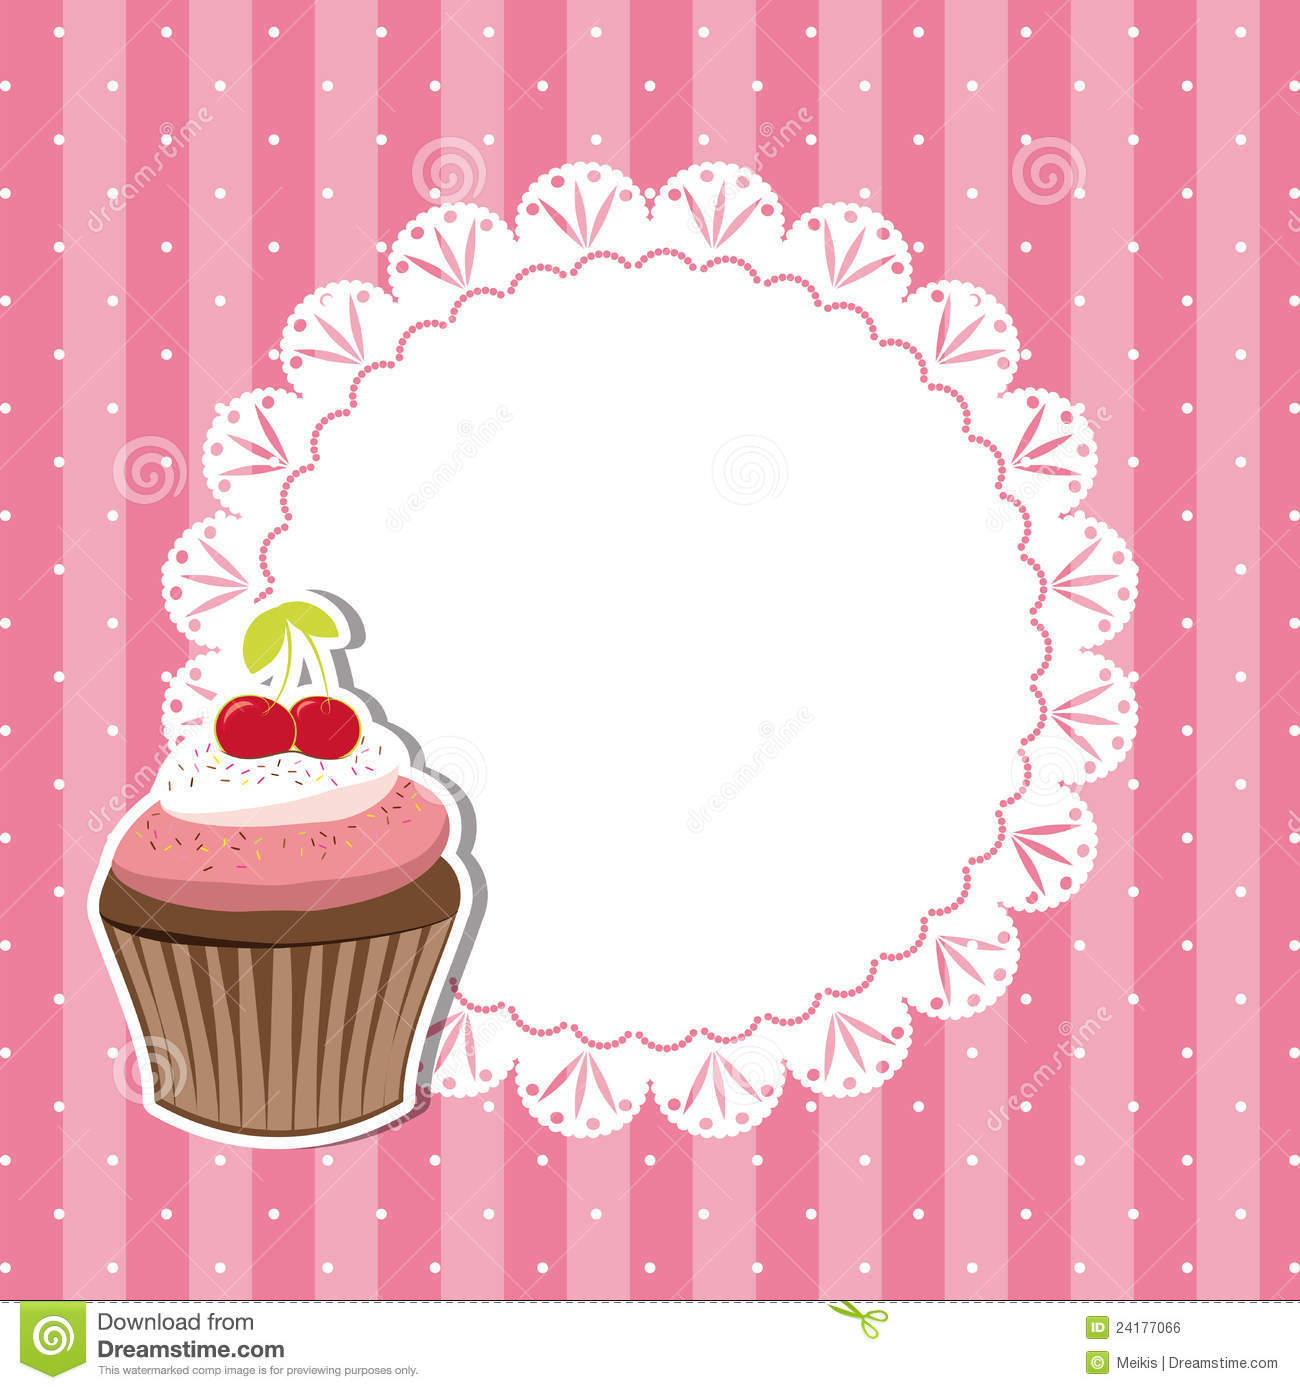 Cherry Cupcake Invitation Card Royalty Free Stock Image - Image ...